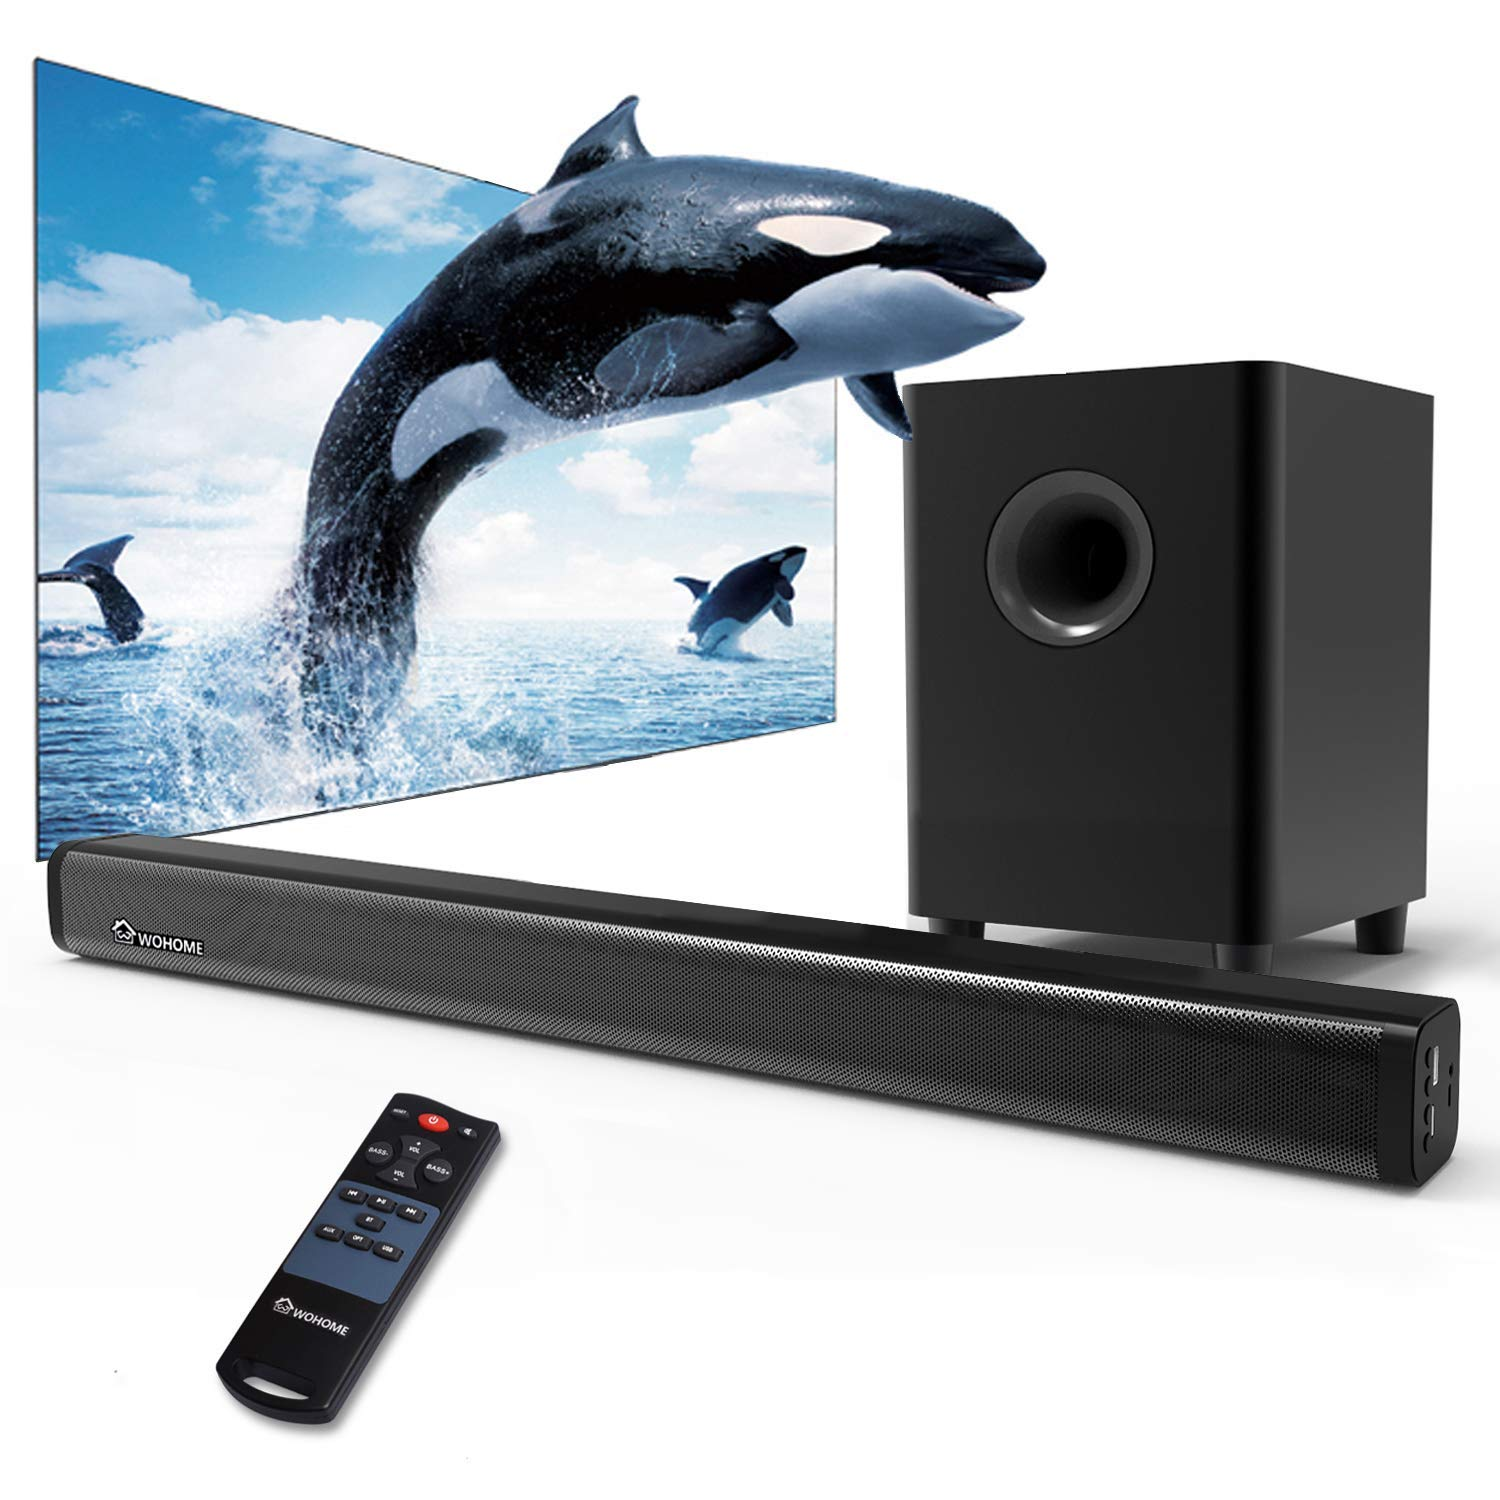 2.1 Channel Wohome TV Soundbar with Subwoofers & Wireless Bluetooth S18